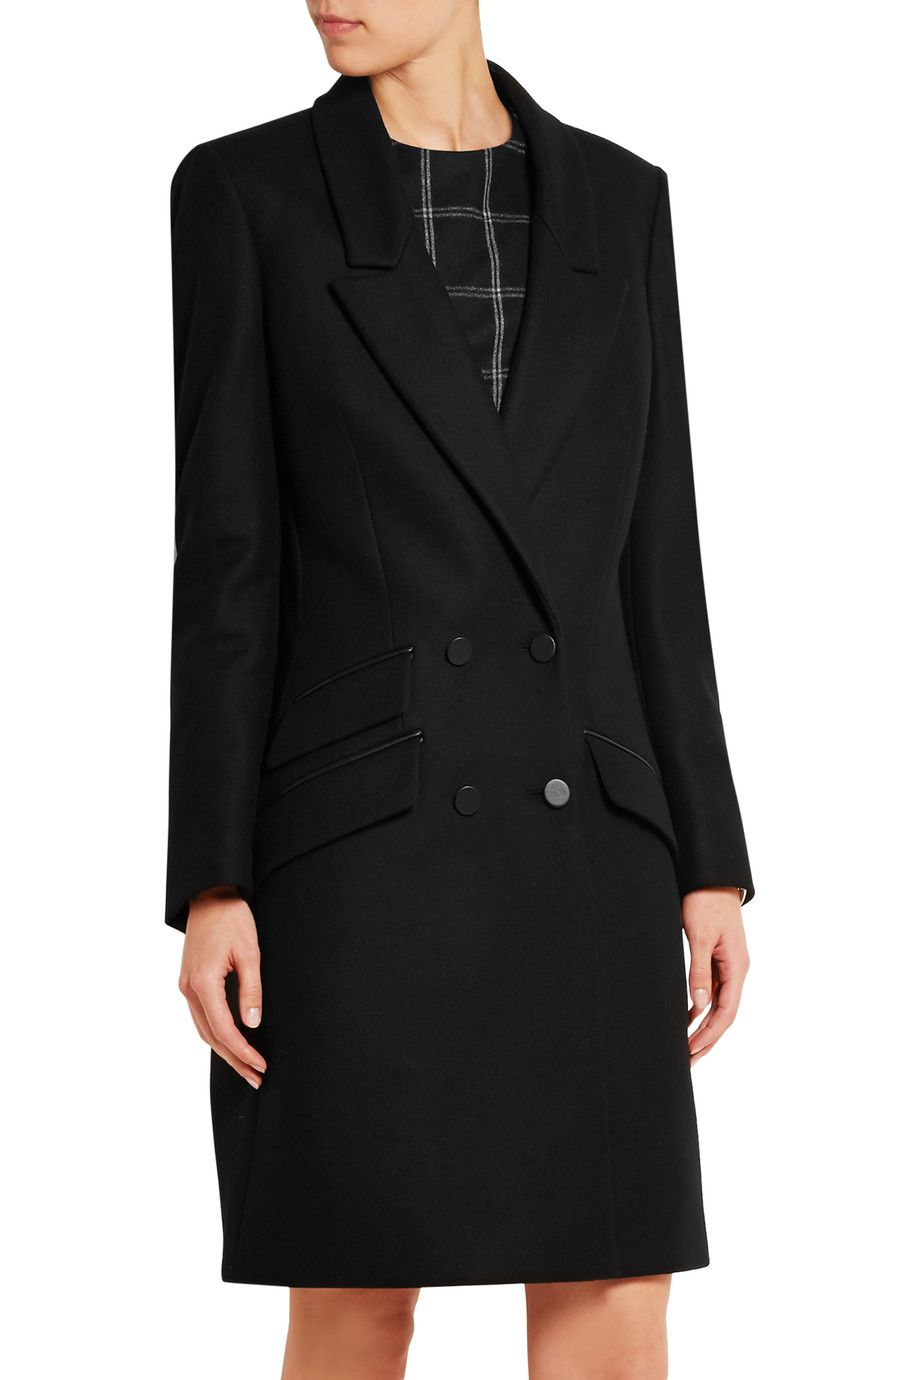 fc0d49f98e6 Shop on-sale Tod s Leather-trimmed wool-blend felt coat. Browse other discount  designer Coats   more on The Most Fashionable Fashion Outlet